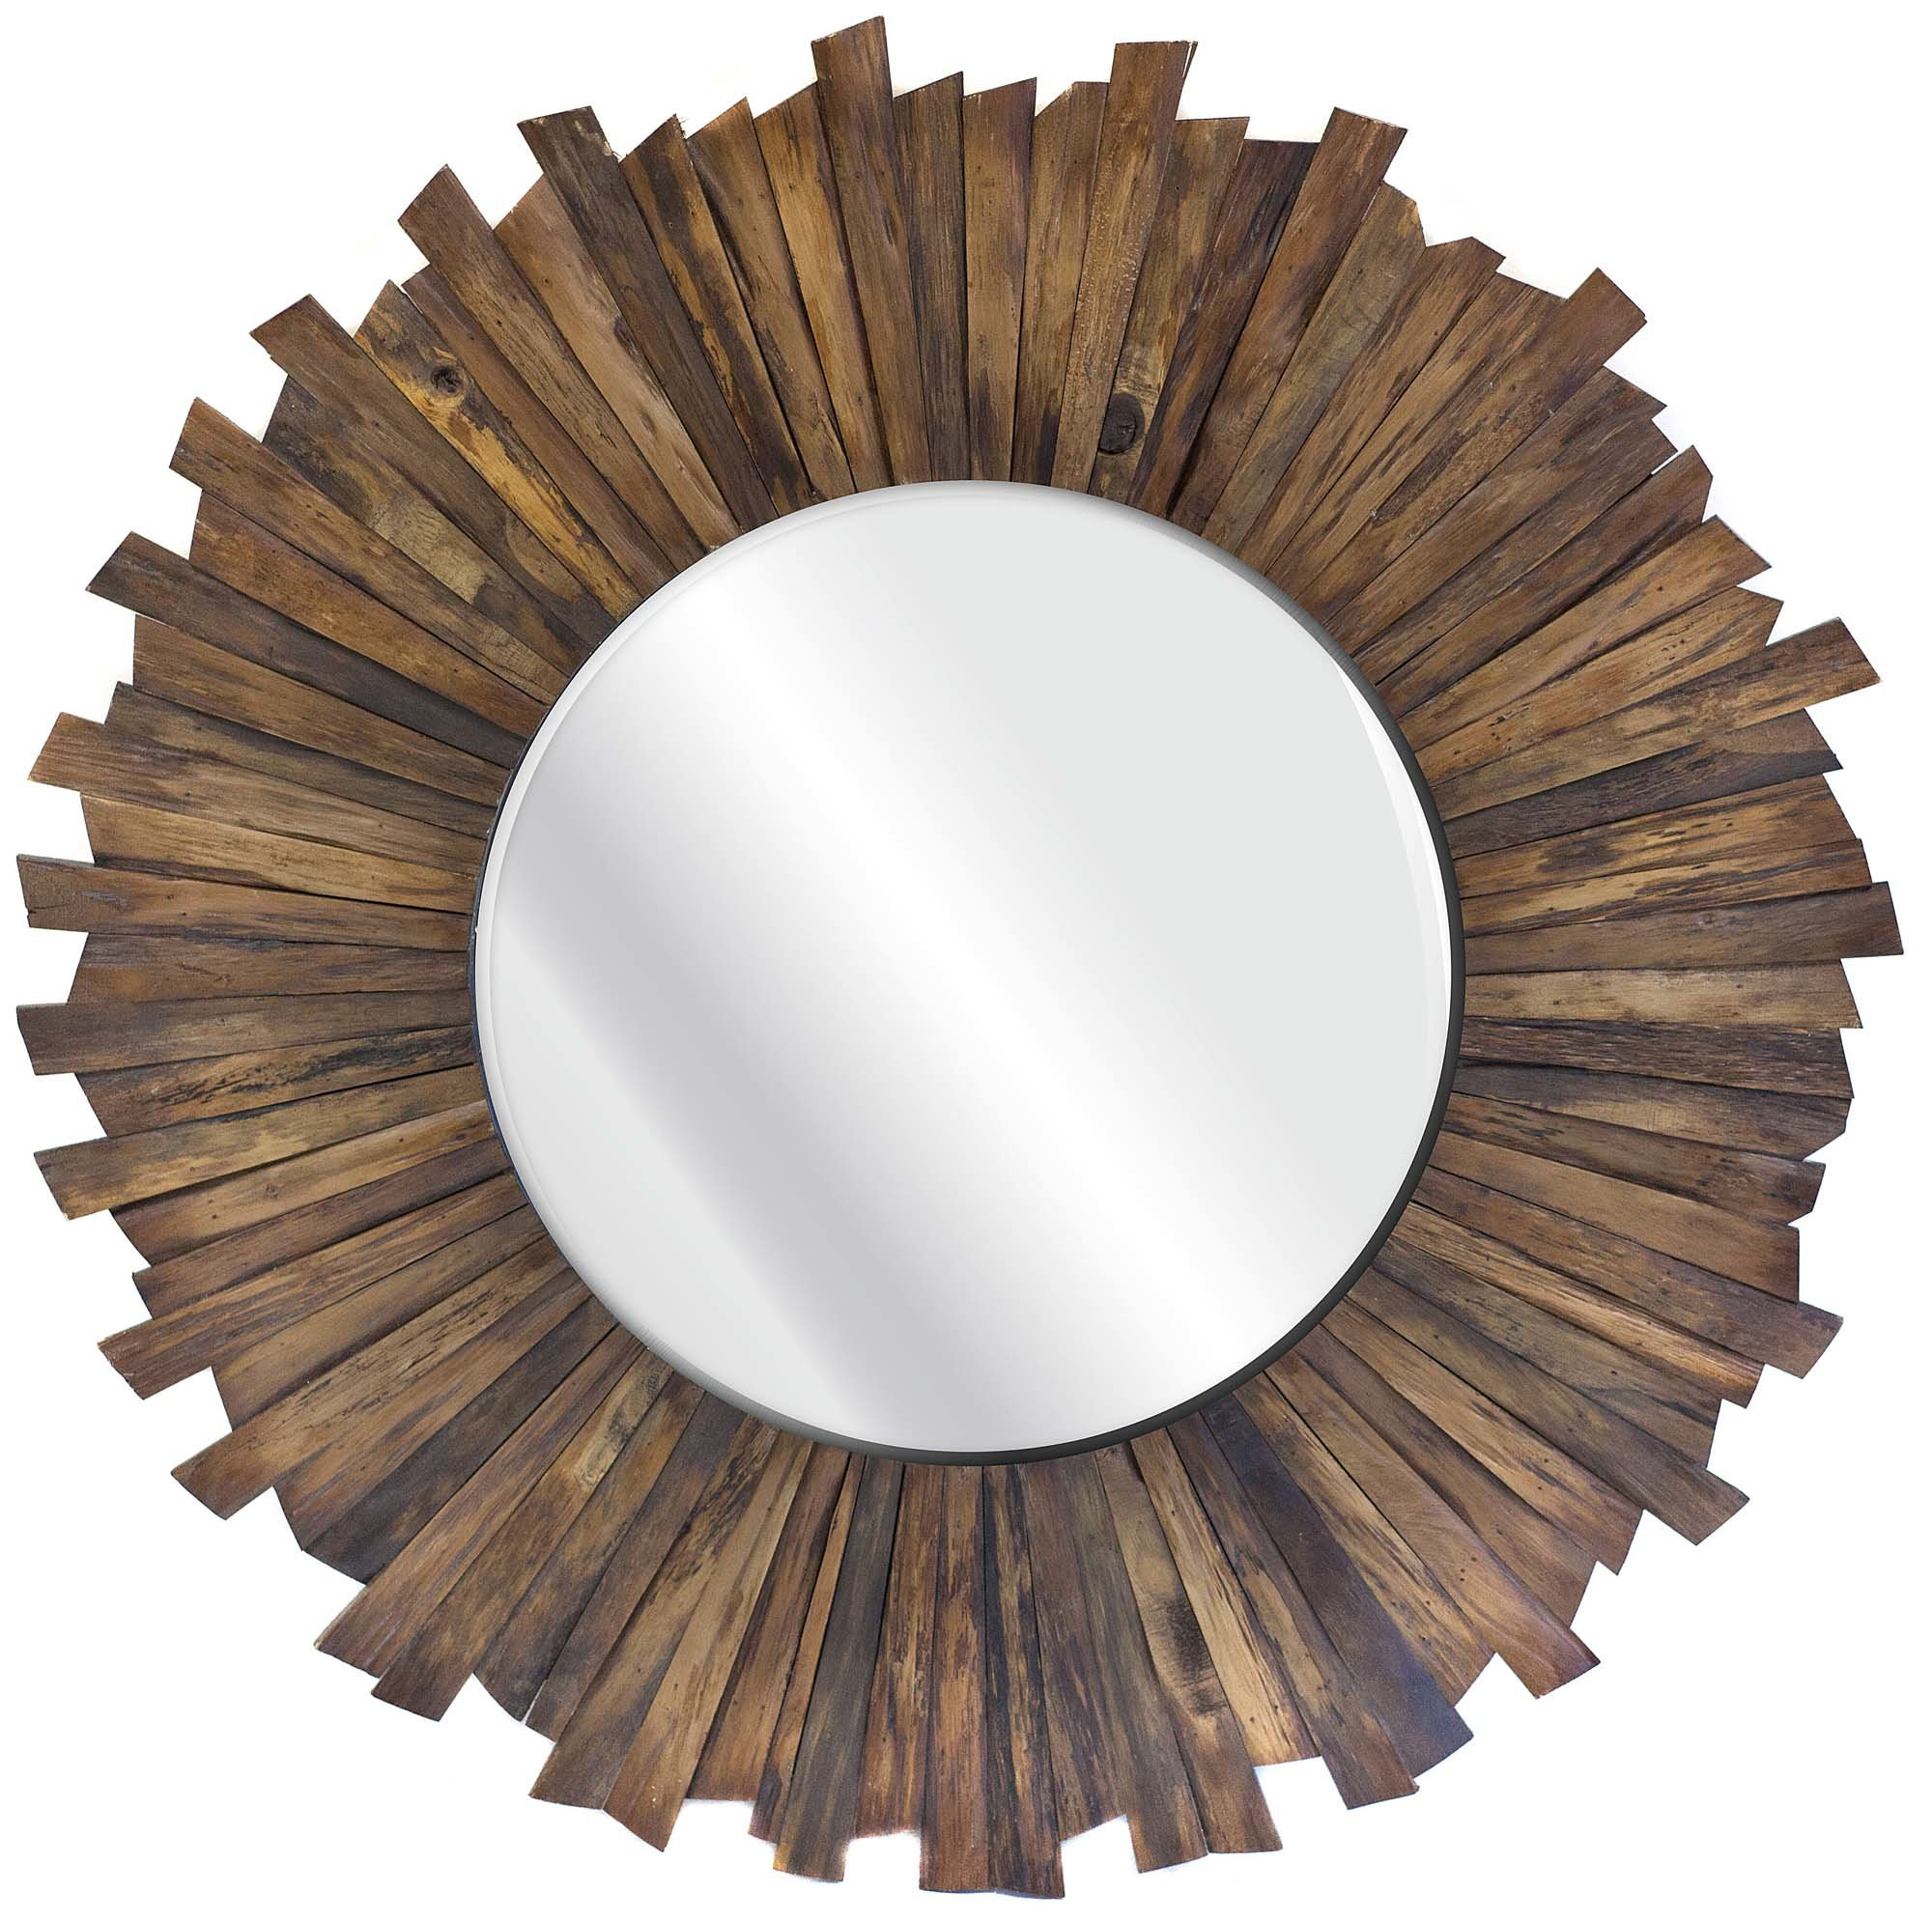 Widely Used Dandir Accent Mirror Pertaining To Perillo Burst Wood Accent Mirrors (Gallery 8 of 20)